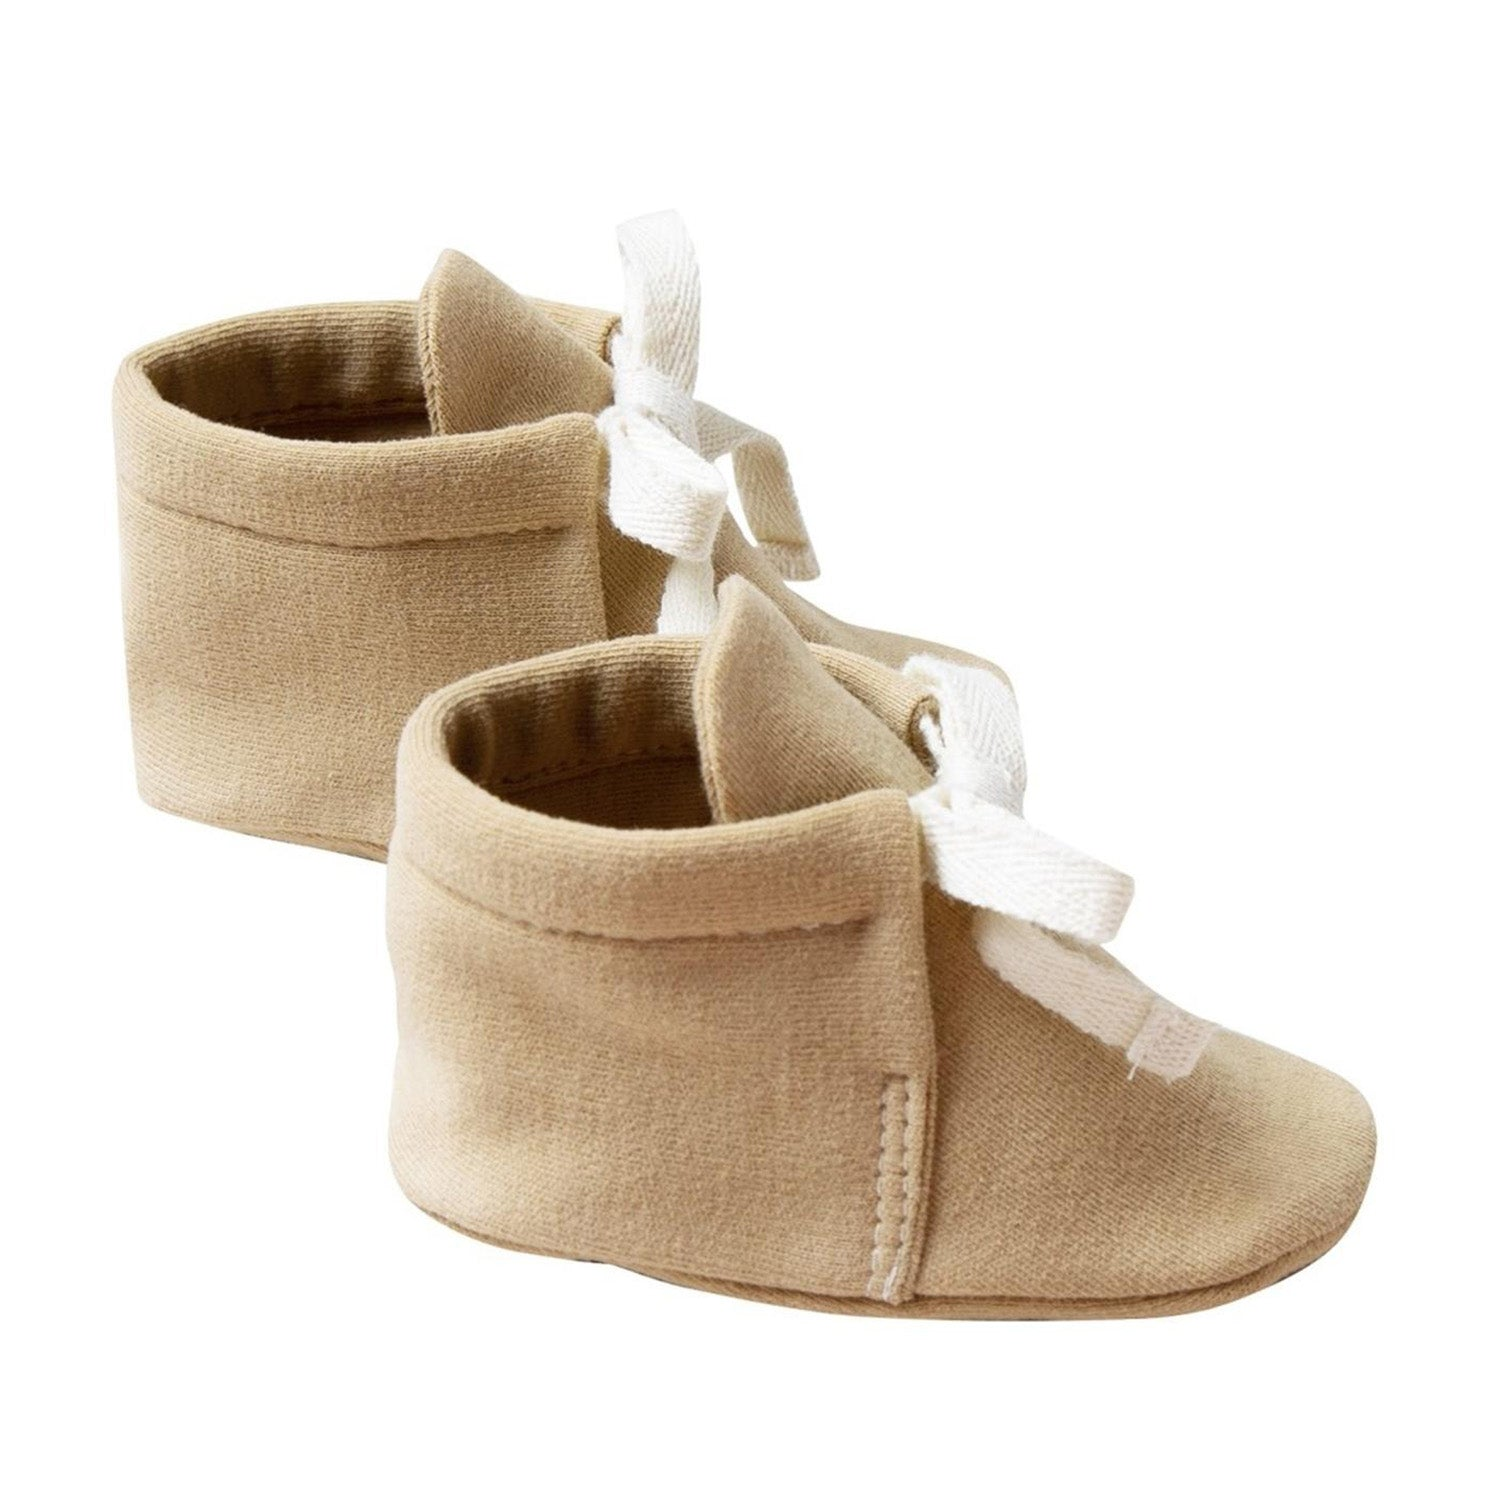 Quincy Mae Organic Baby Booties Honey